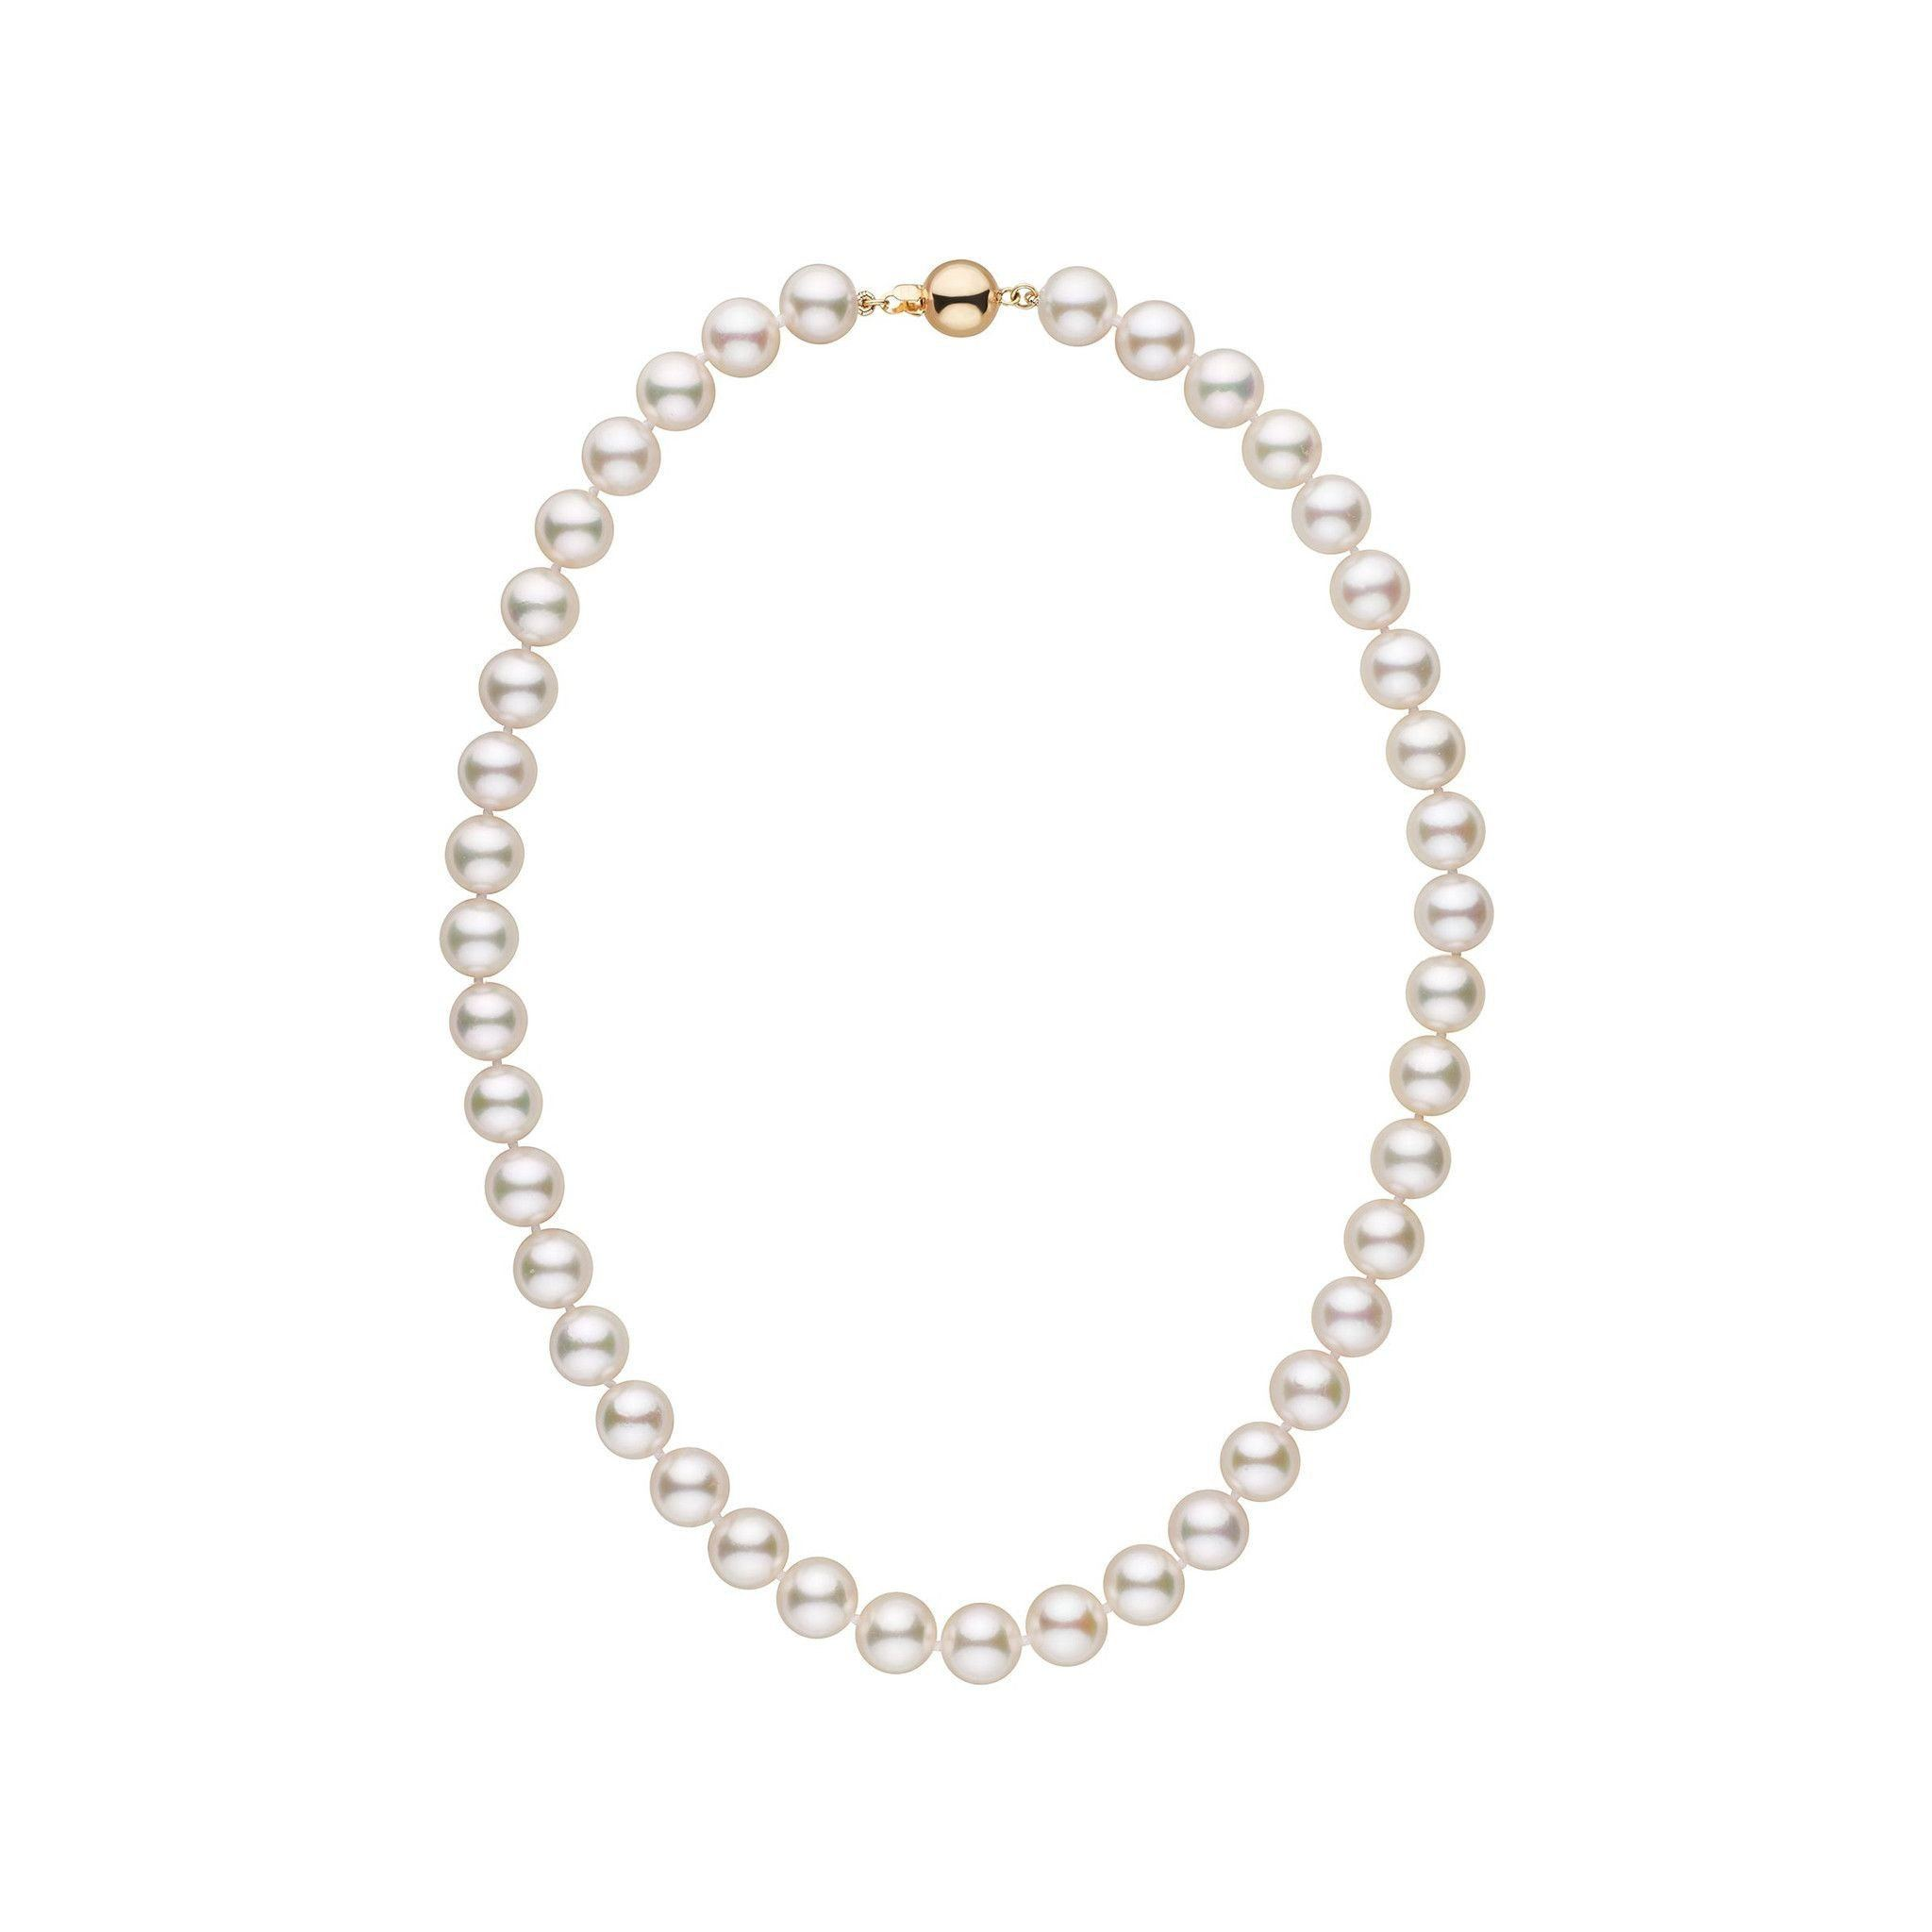 9.0-9.5 mm 16 Inch AA+ White Akoya Pearl Necklace